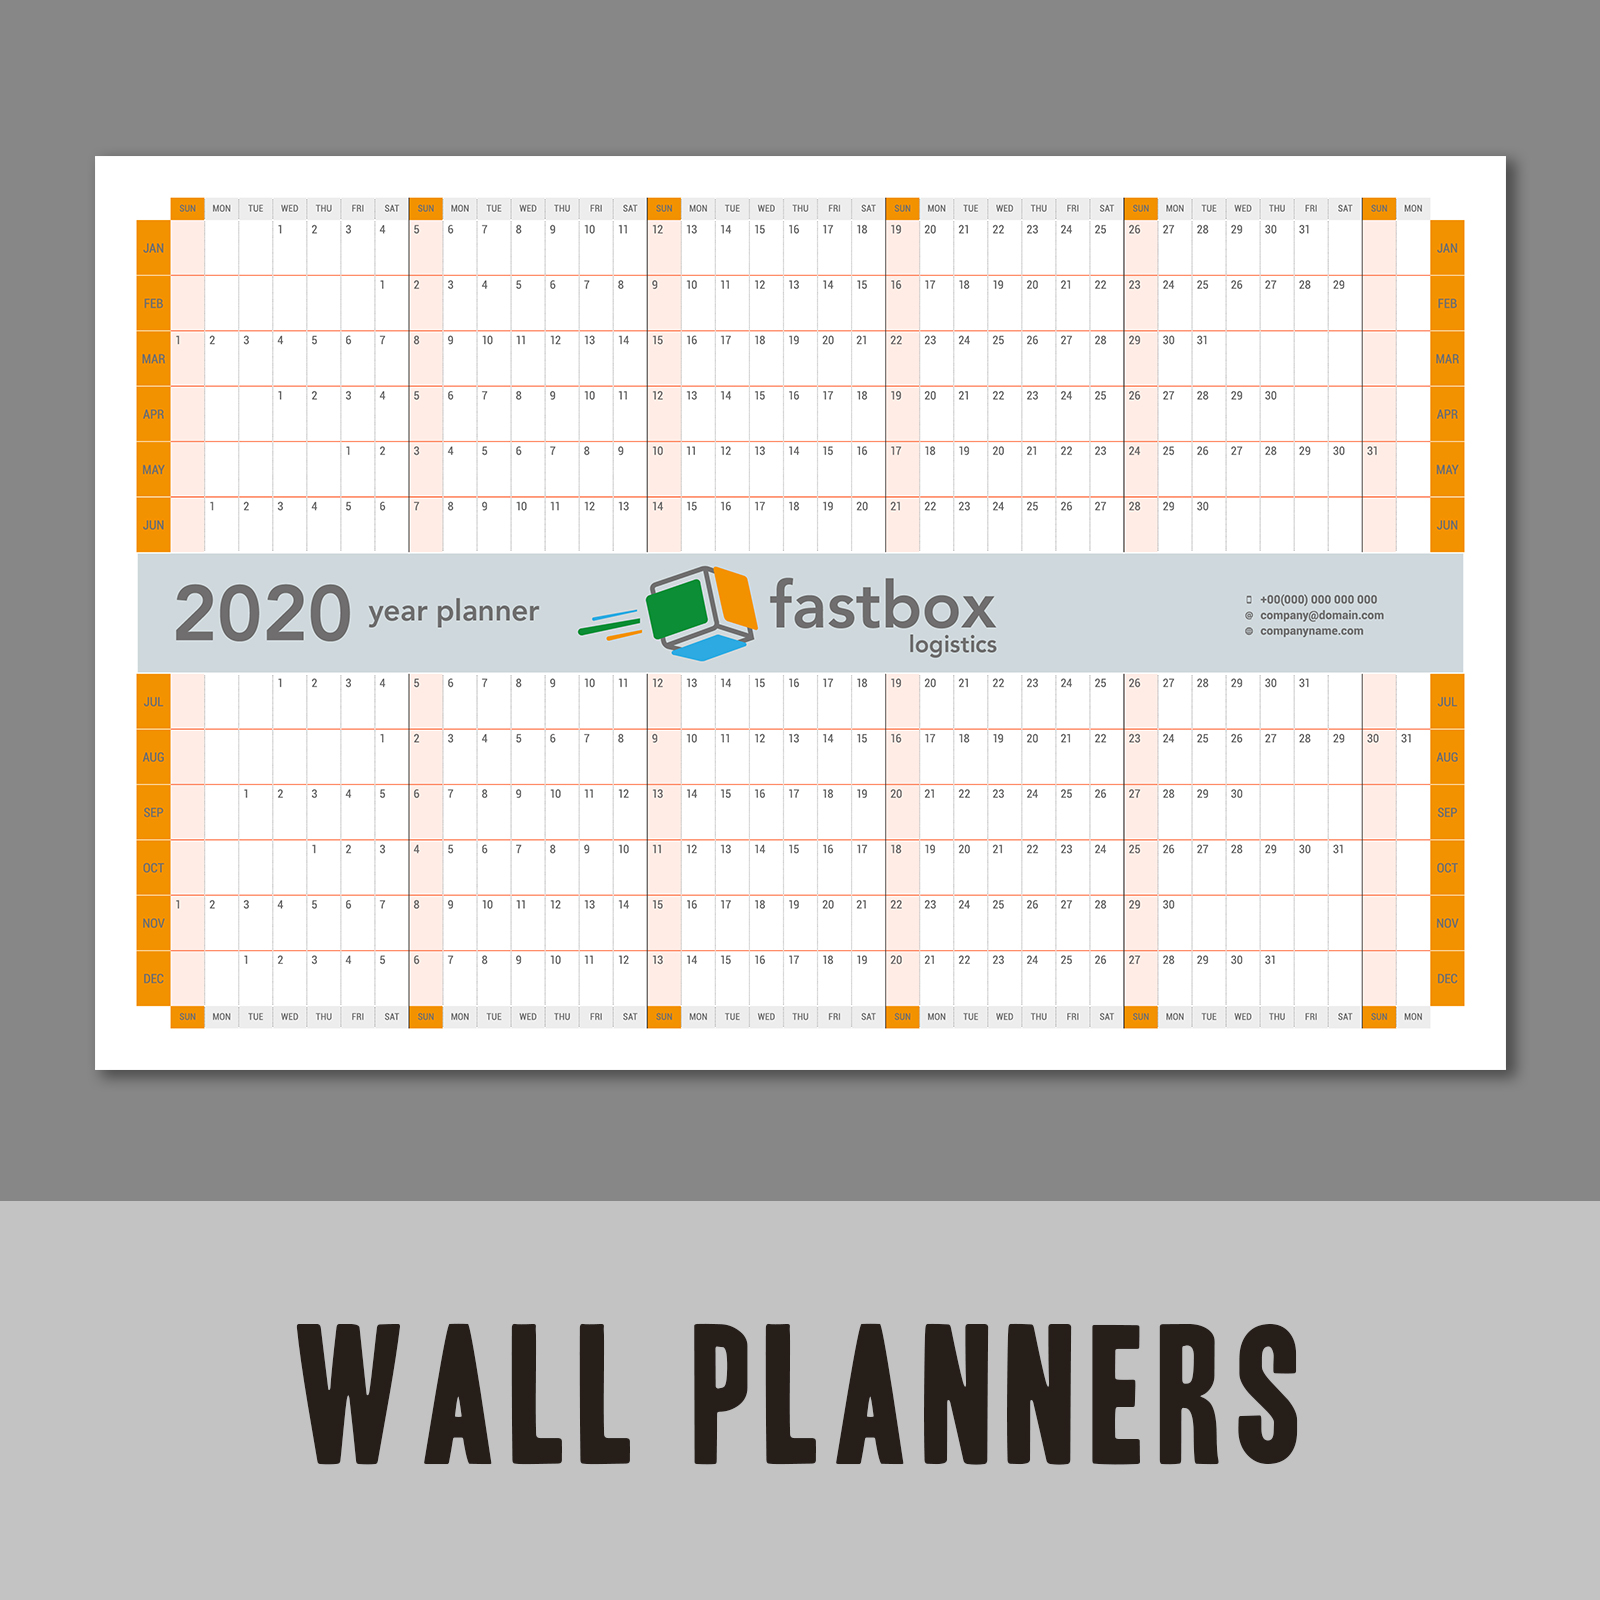 Wall Planners - Fastbox logistics